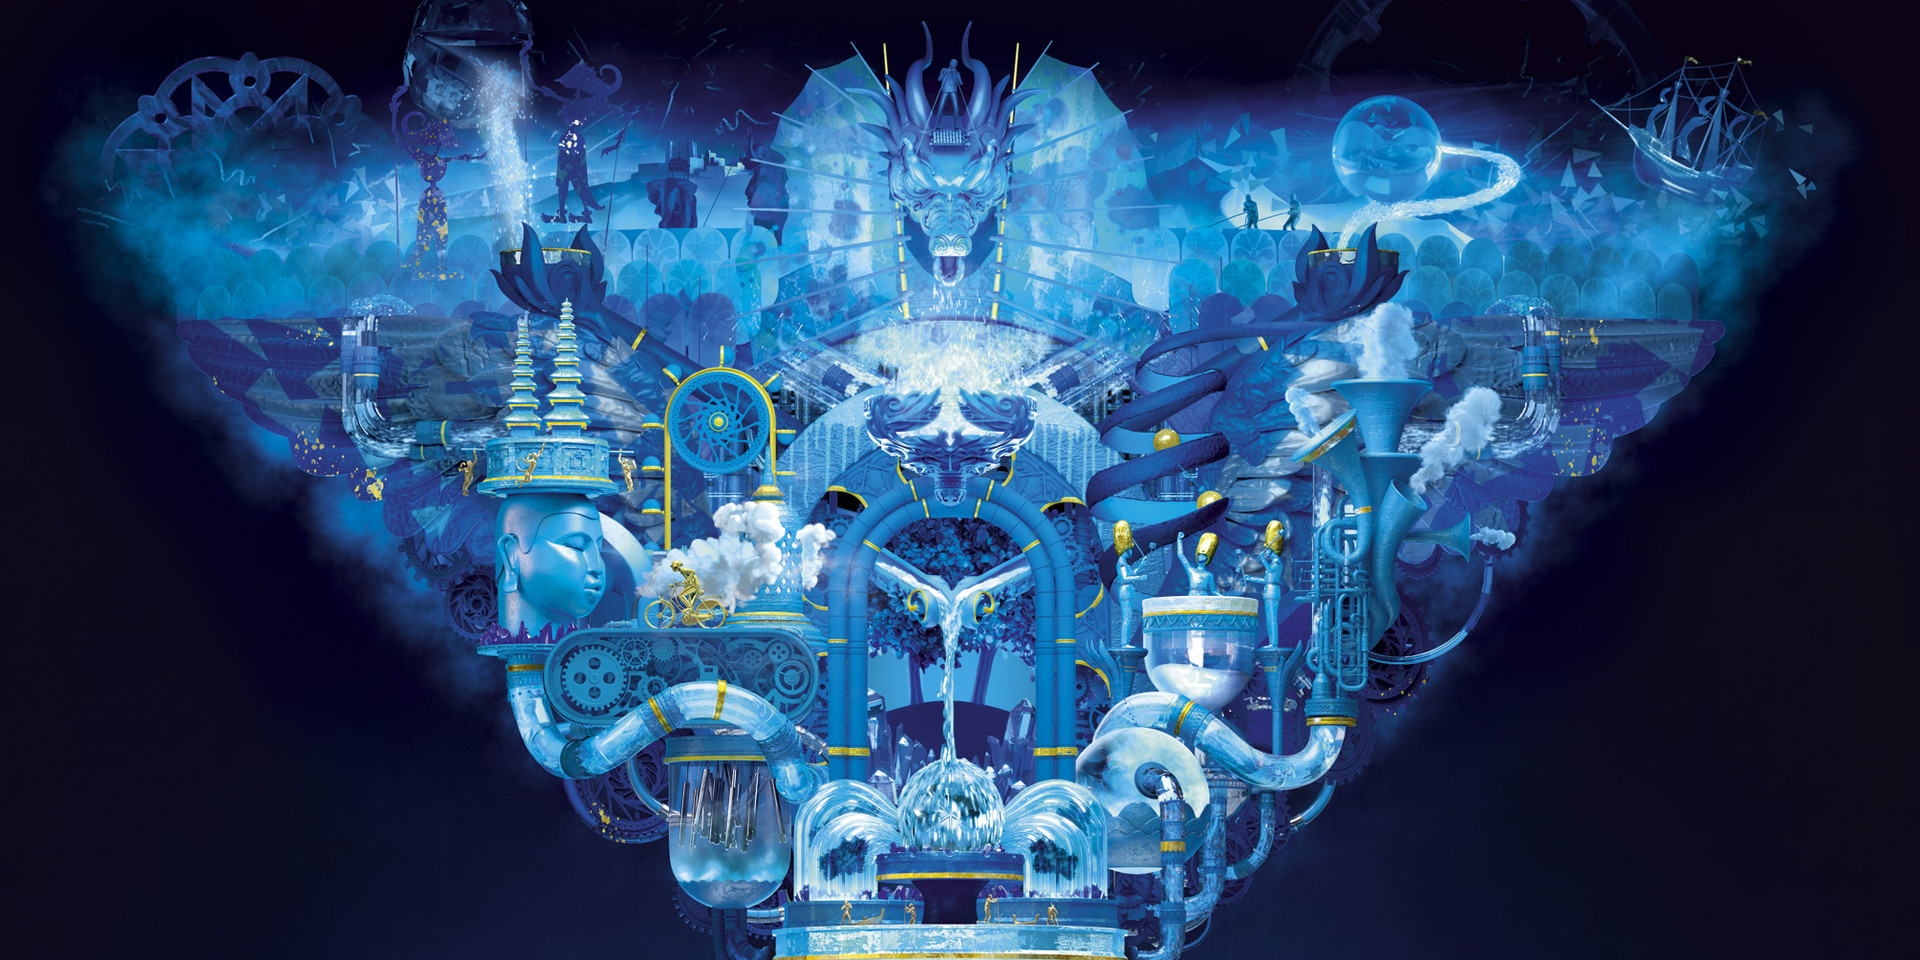 Bombay Sapphire - Imagination Distilled